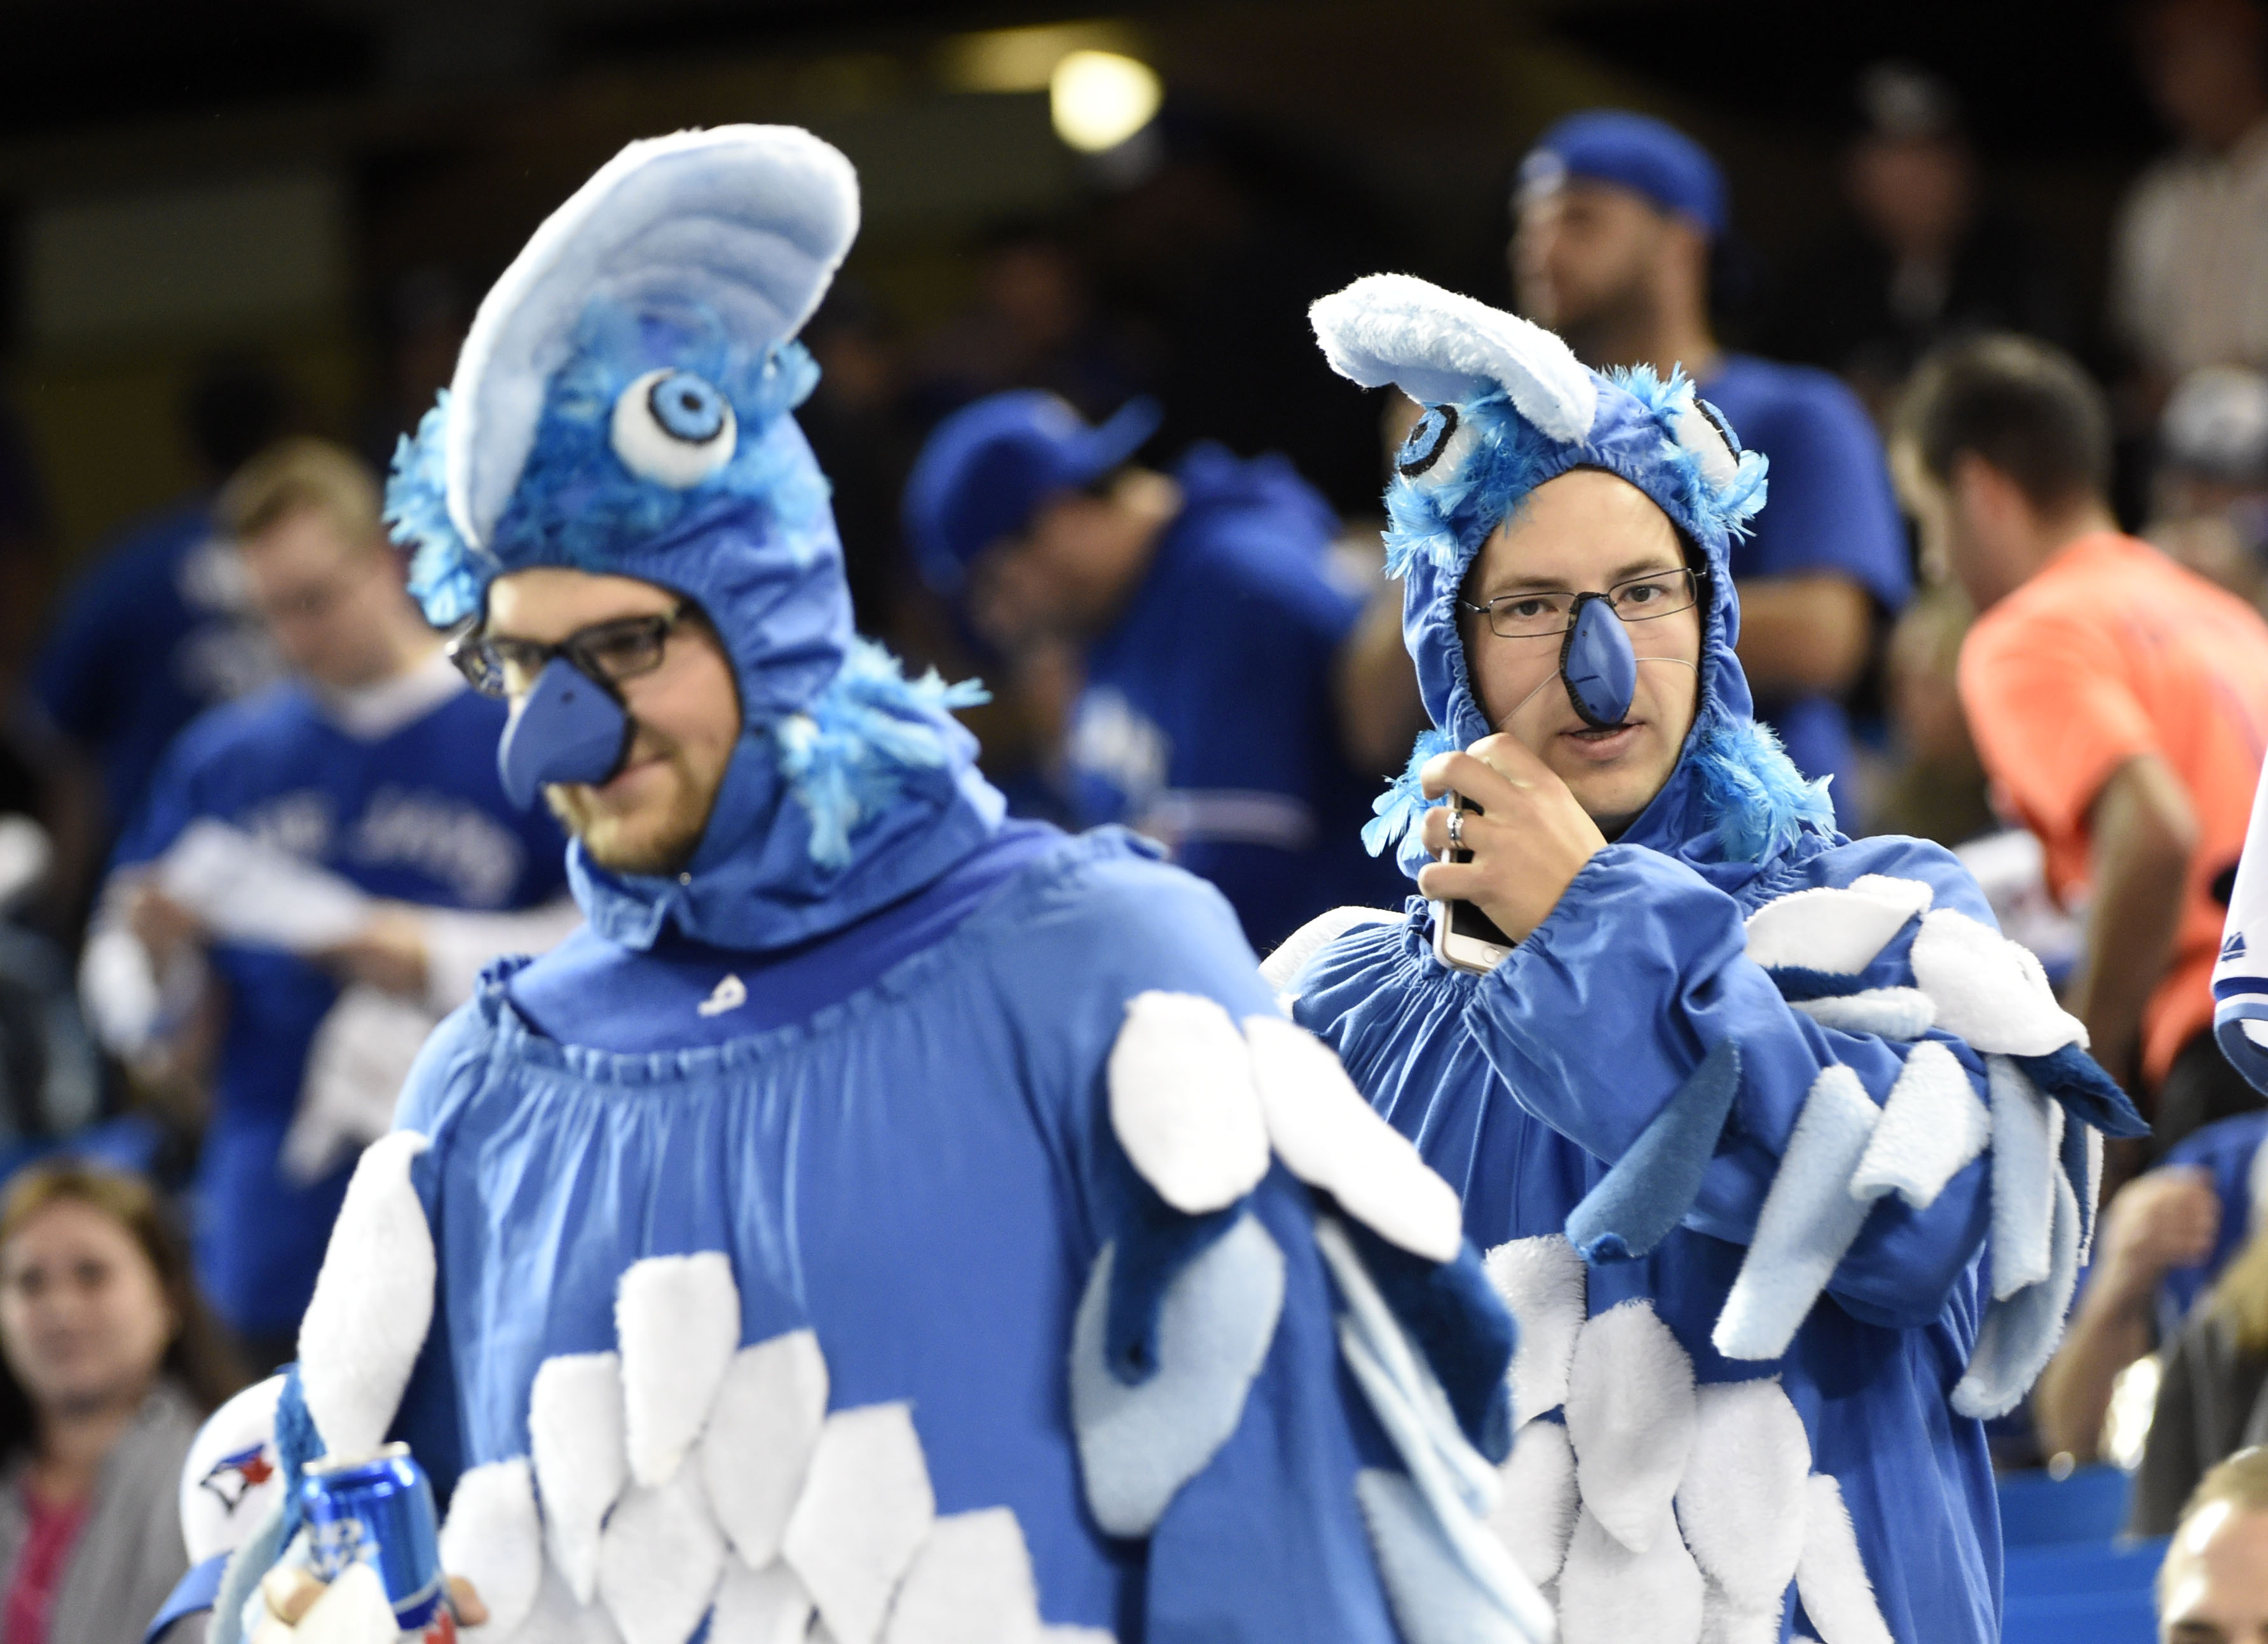 Toronto Blue Jays fans wear costumes before Game 5 of the ALDS against the Texas Rangers. (Photo: Nick Turchiaro, USA TODAY Sports)